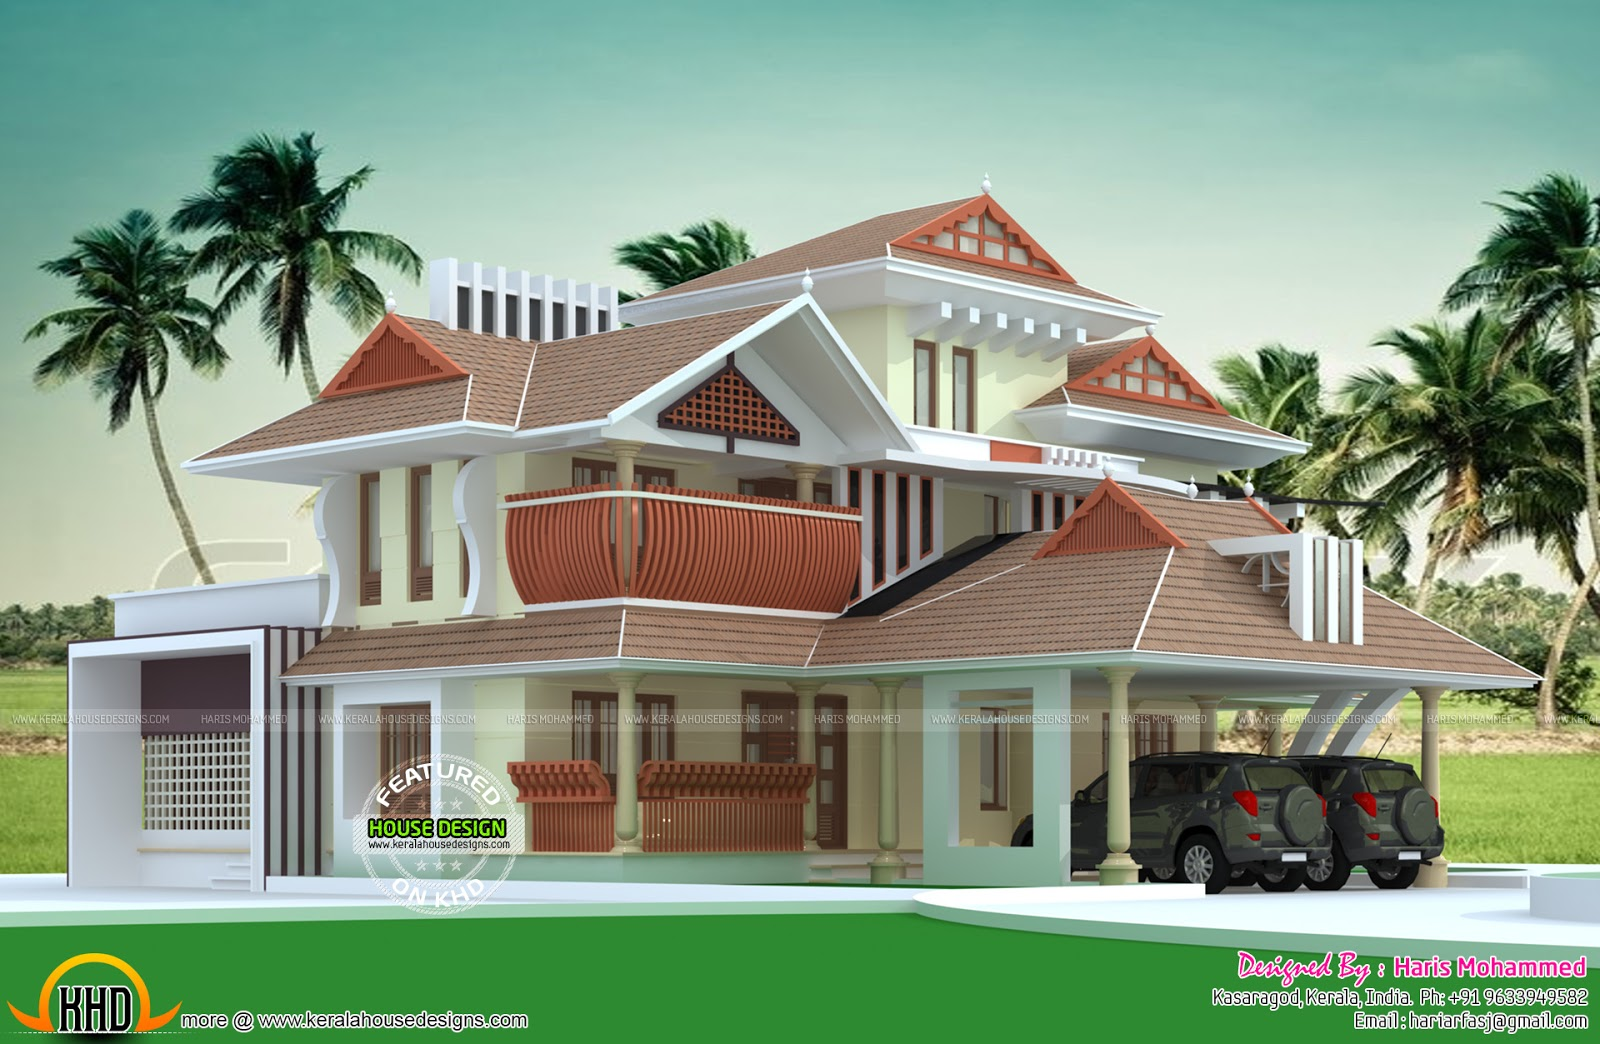 New Traditional Vastu Based Kerala Home Design Kerala